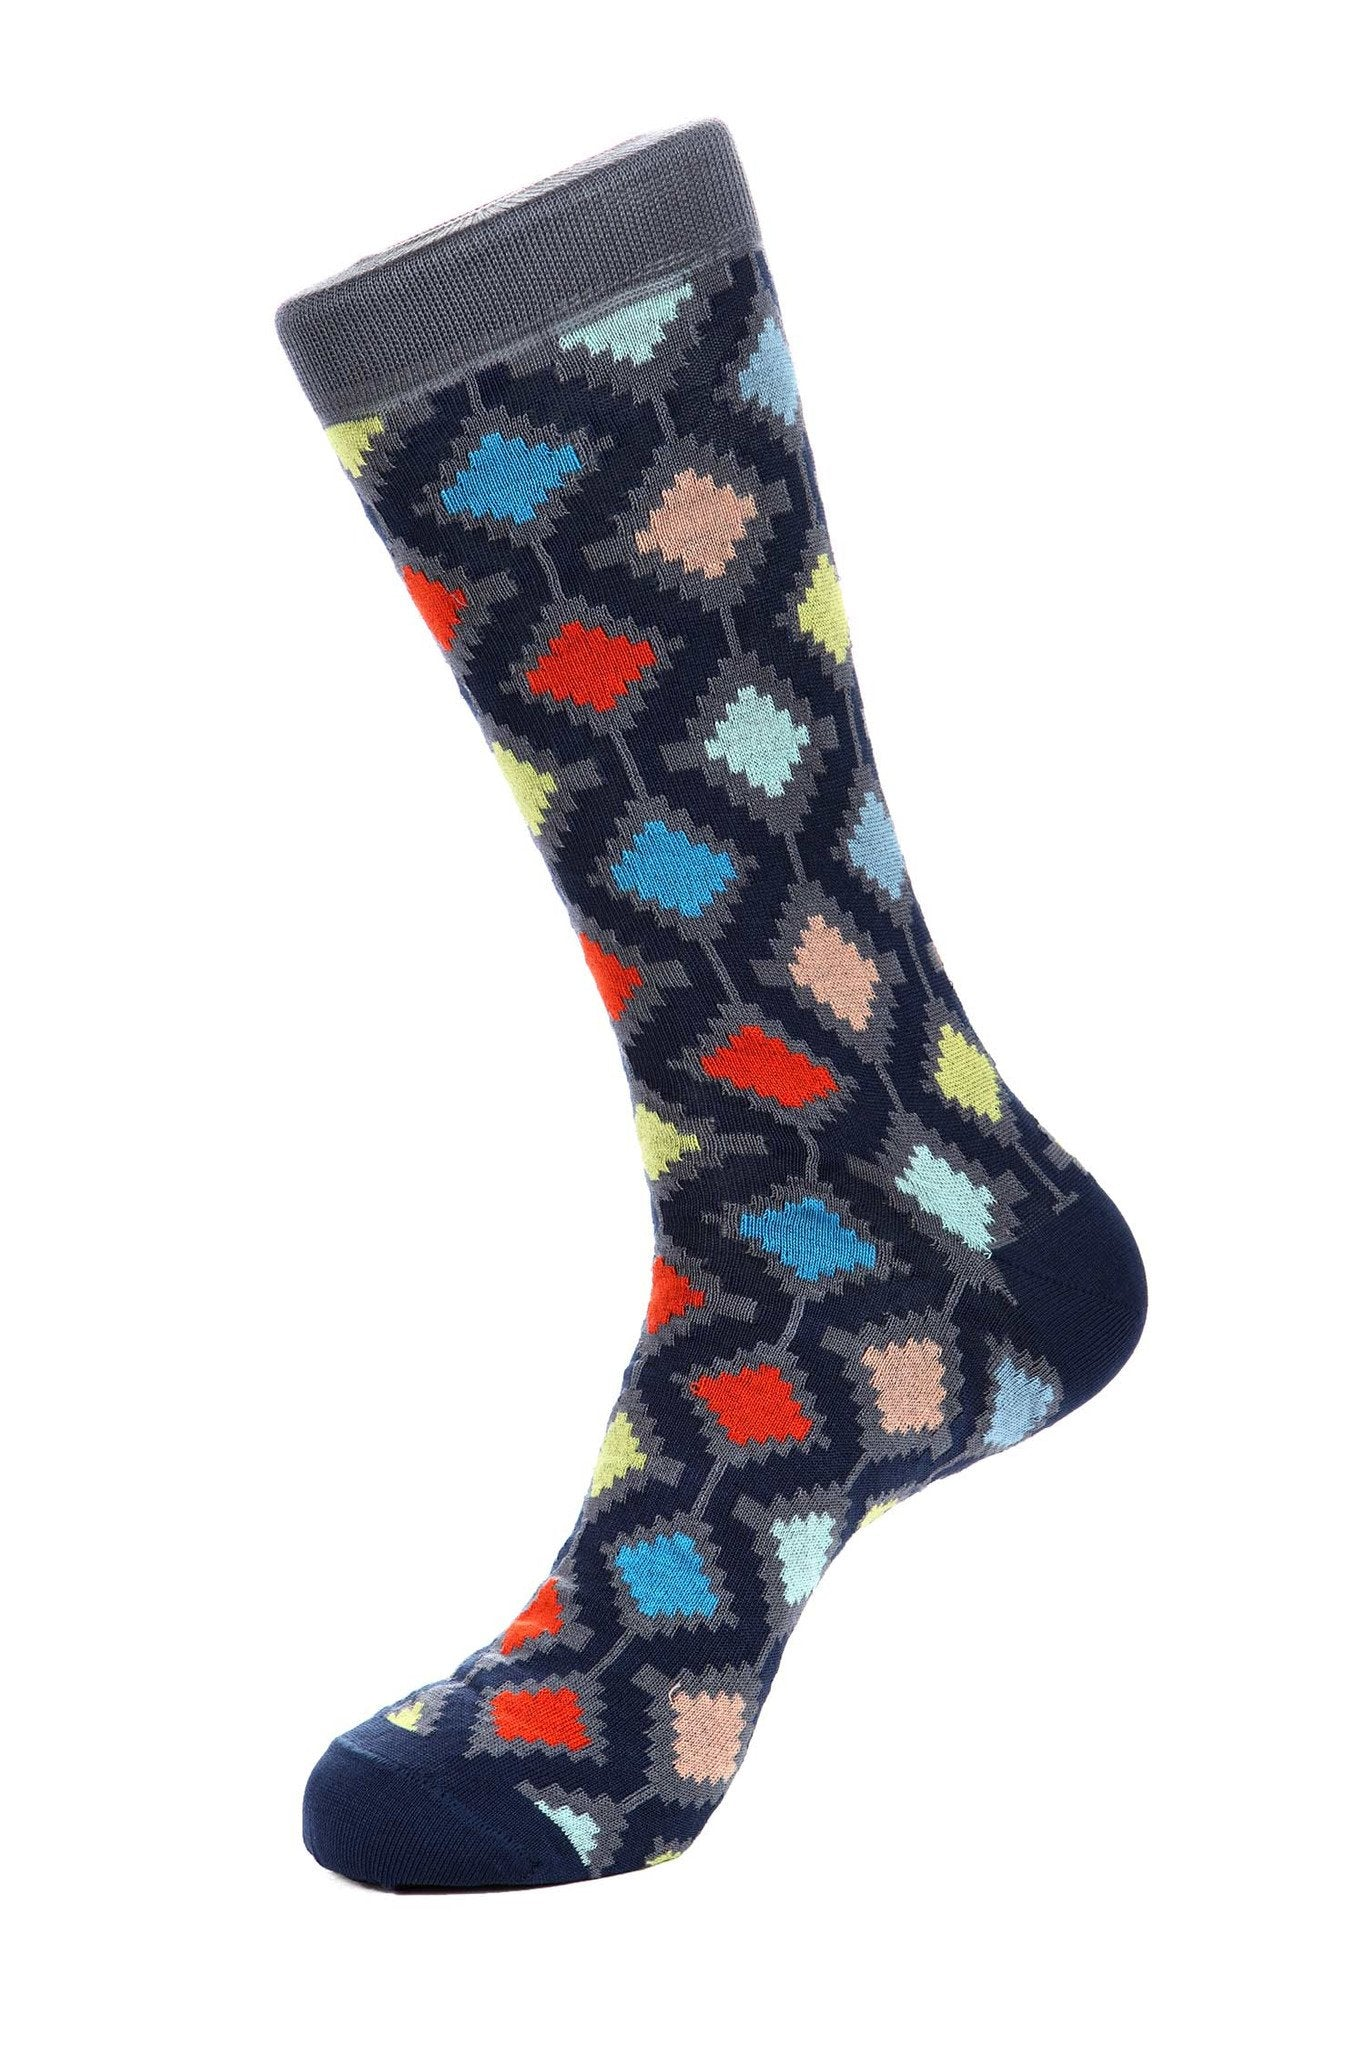 Navy Mercerized Socks for Men JL-11064-1 - Jared Lang